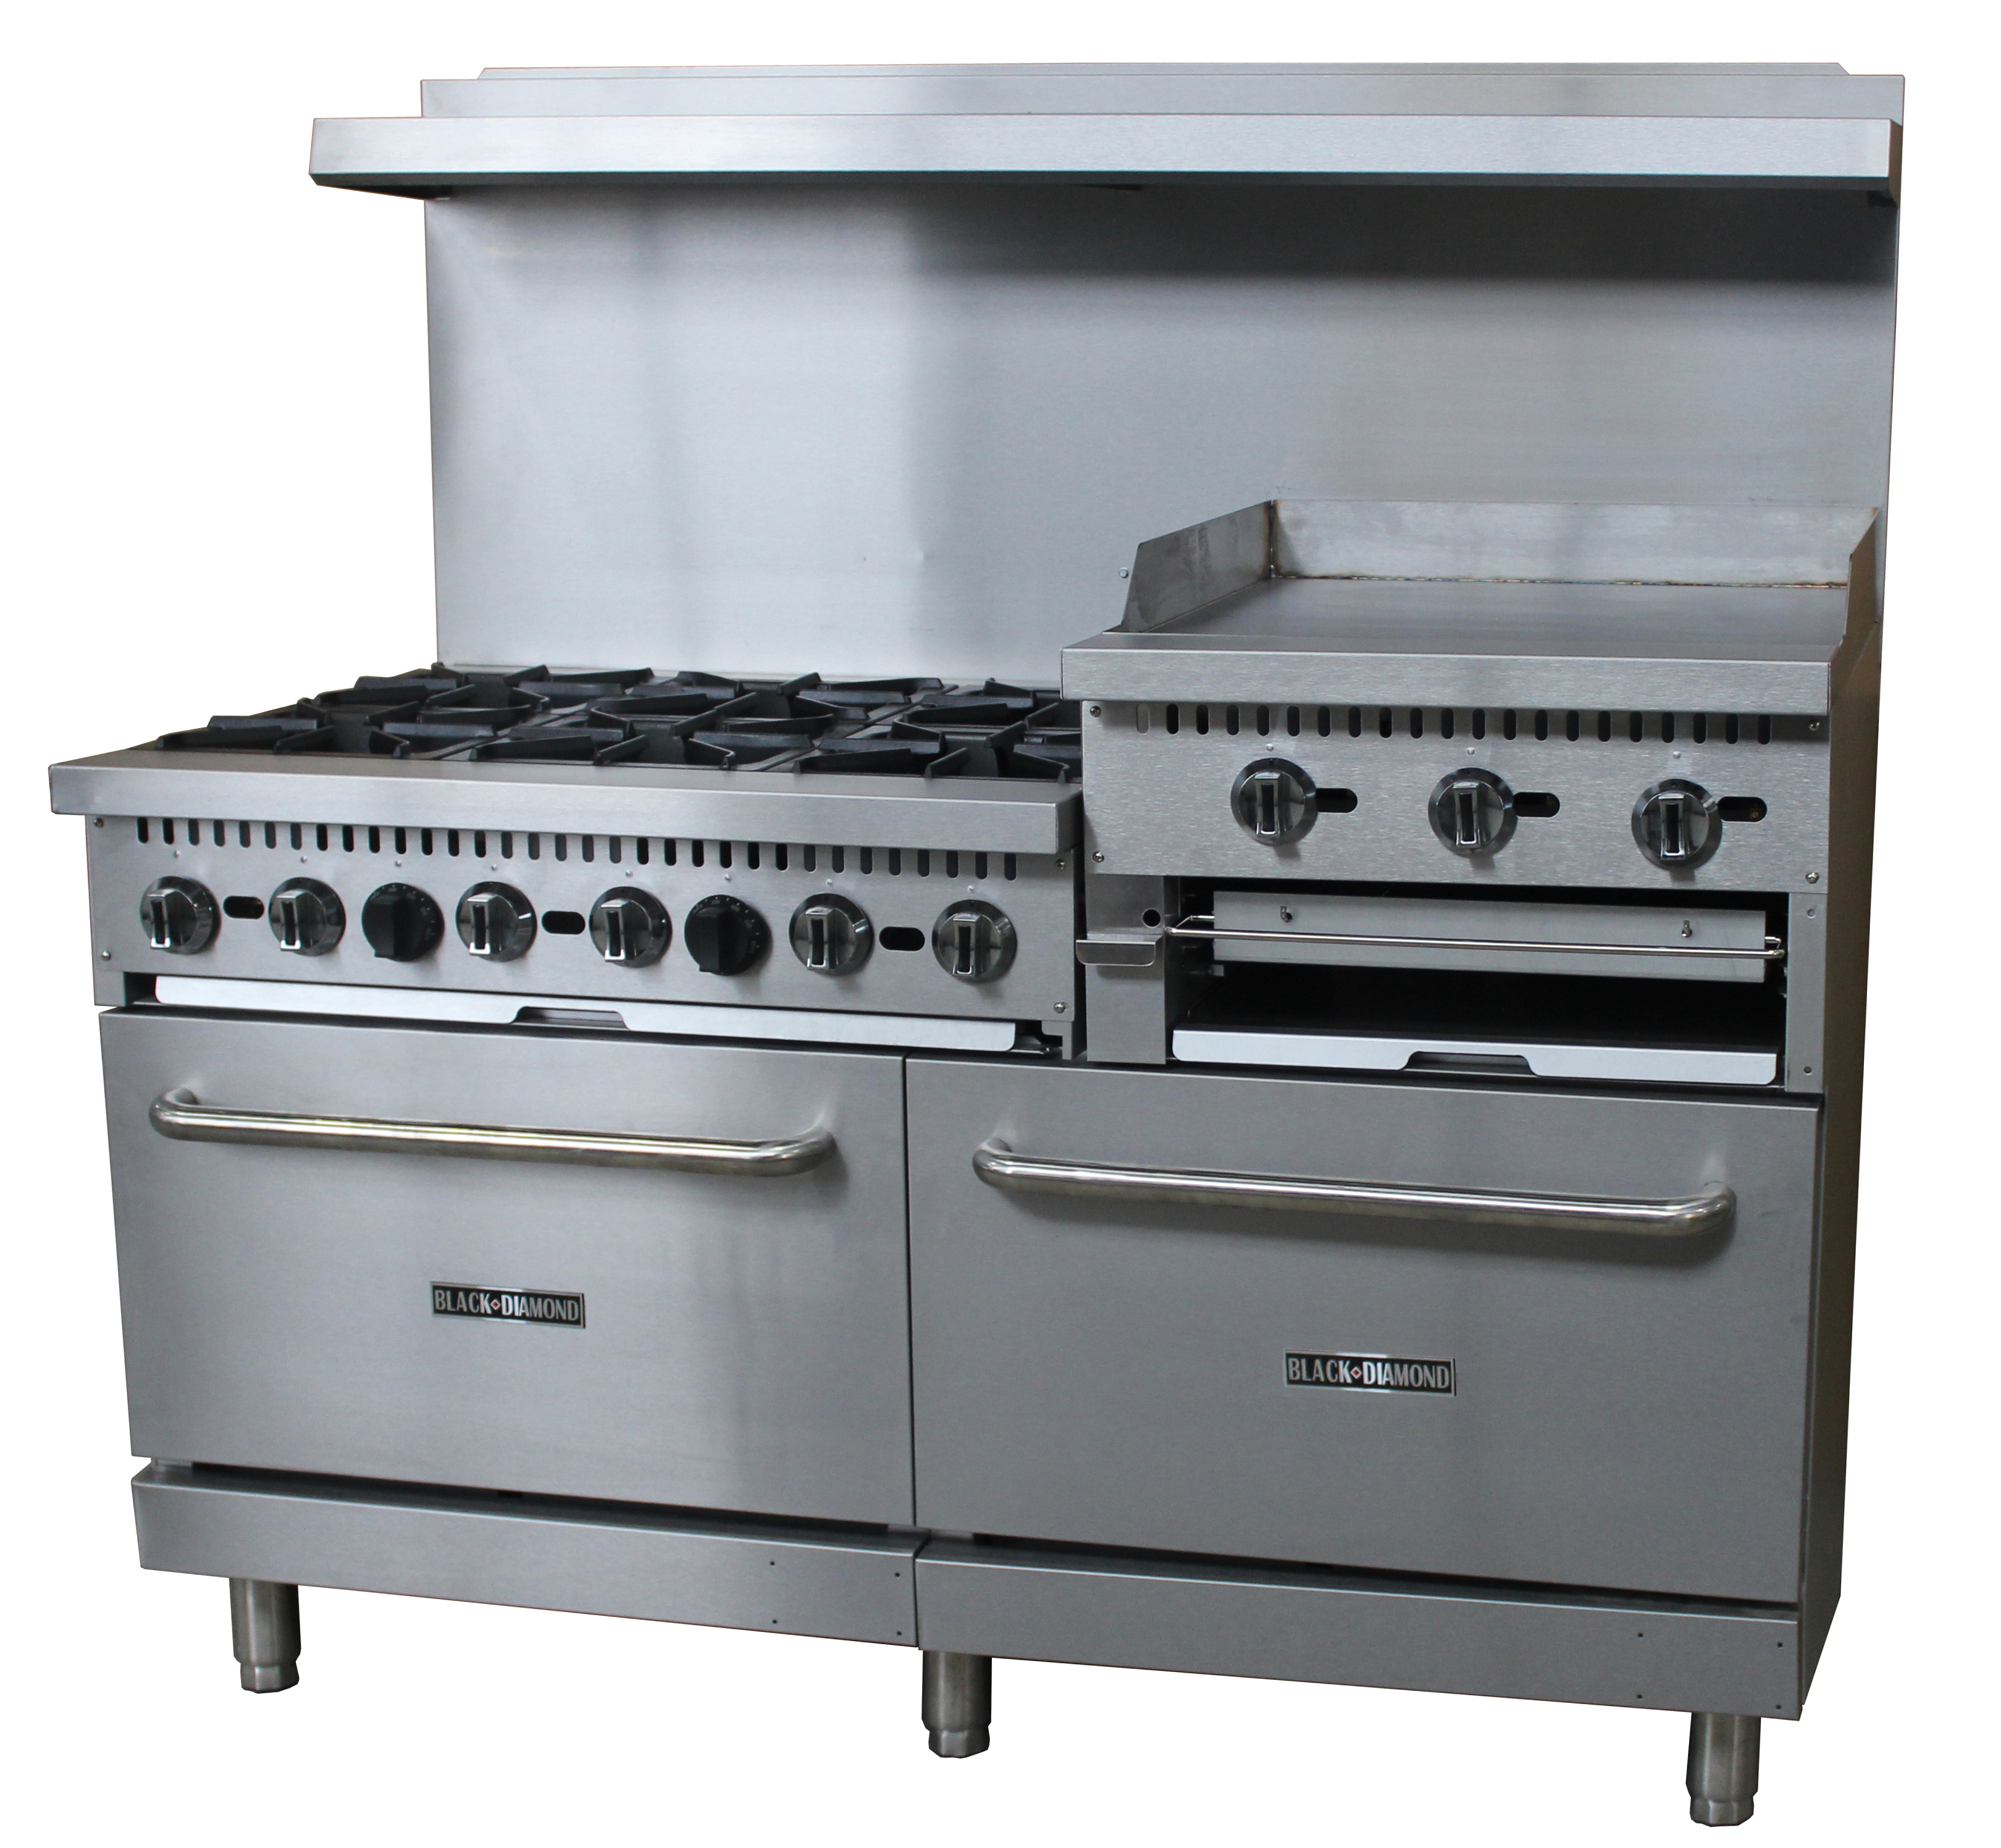 Adcraft (Admiral Craft Equipment) BDGR-6024GB/NG gas range